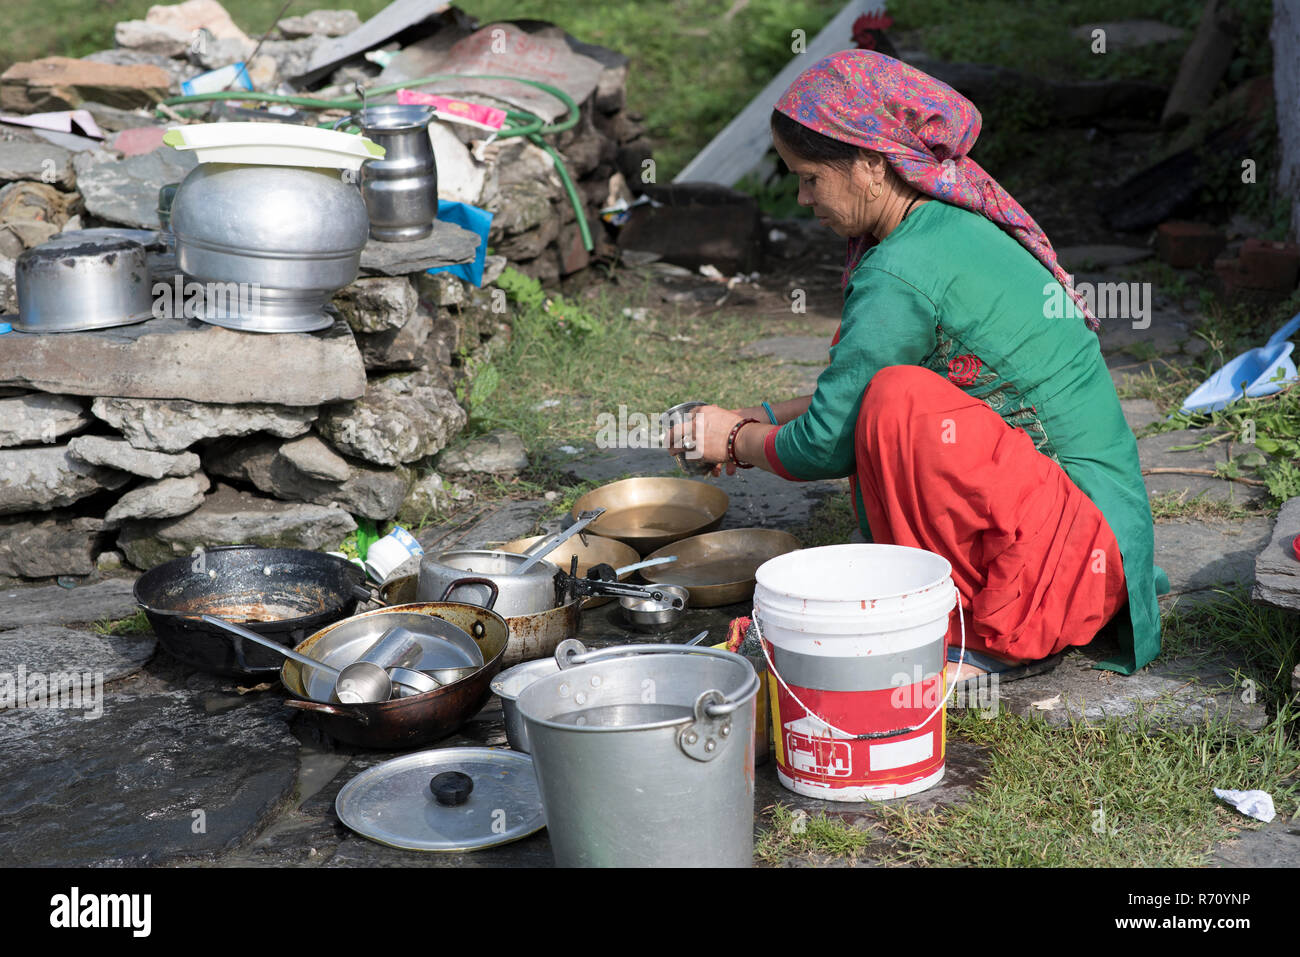 Woman cleaning utensils outdoors in Shimla, Himachal Pradesh, India. - Stock Image